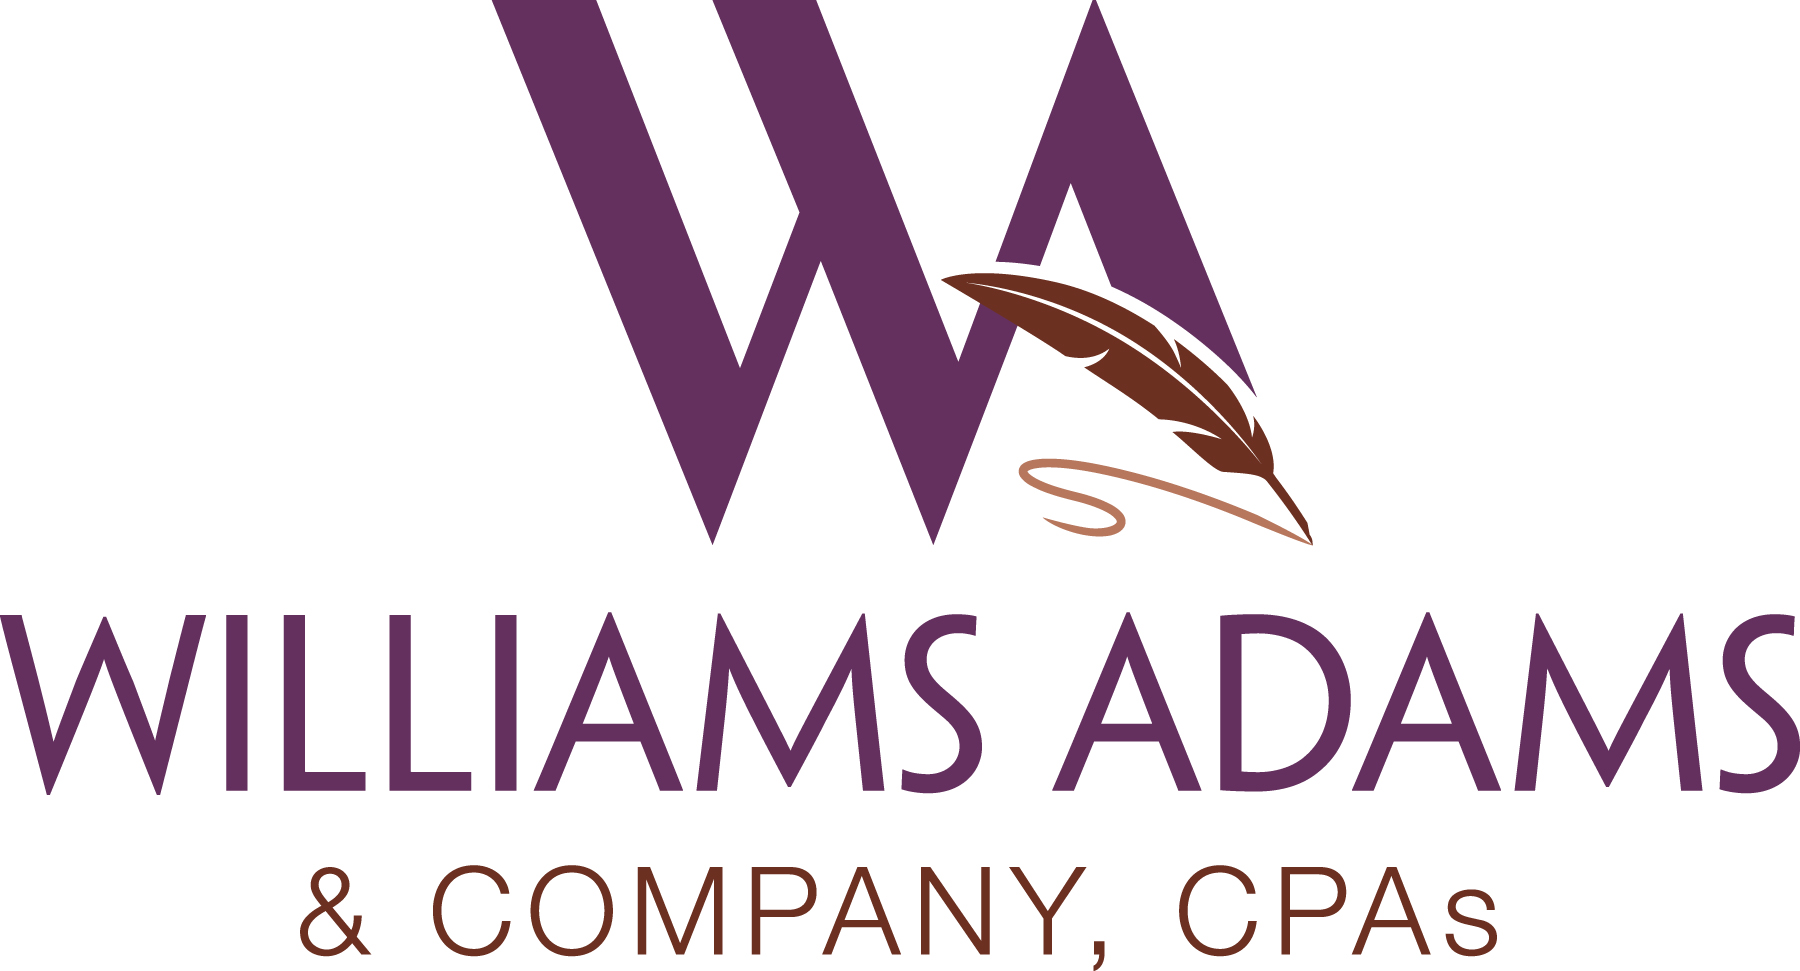 Williams Adams & Company, CPAs